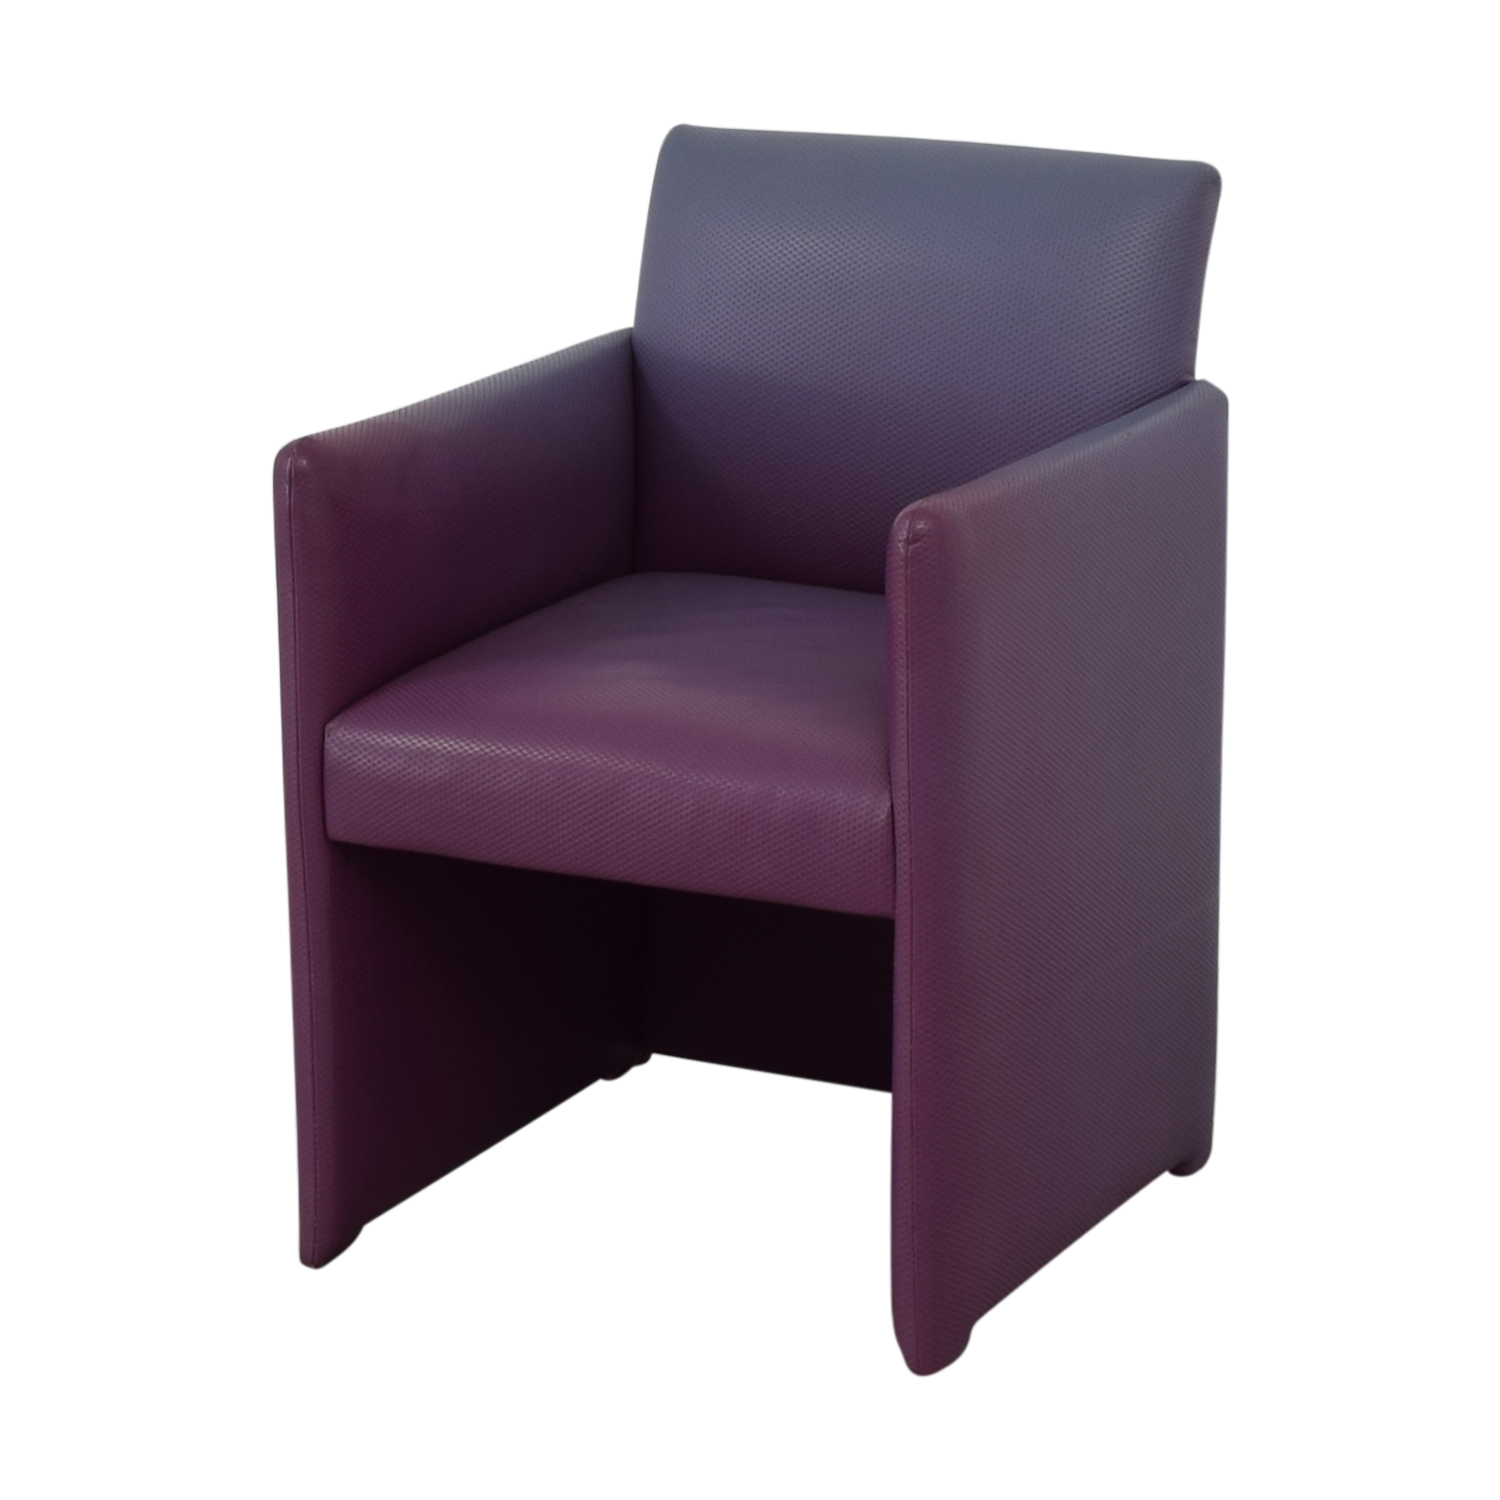 Furniture Masters Furniture Masters Purple Accent Chair used